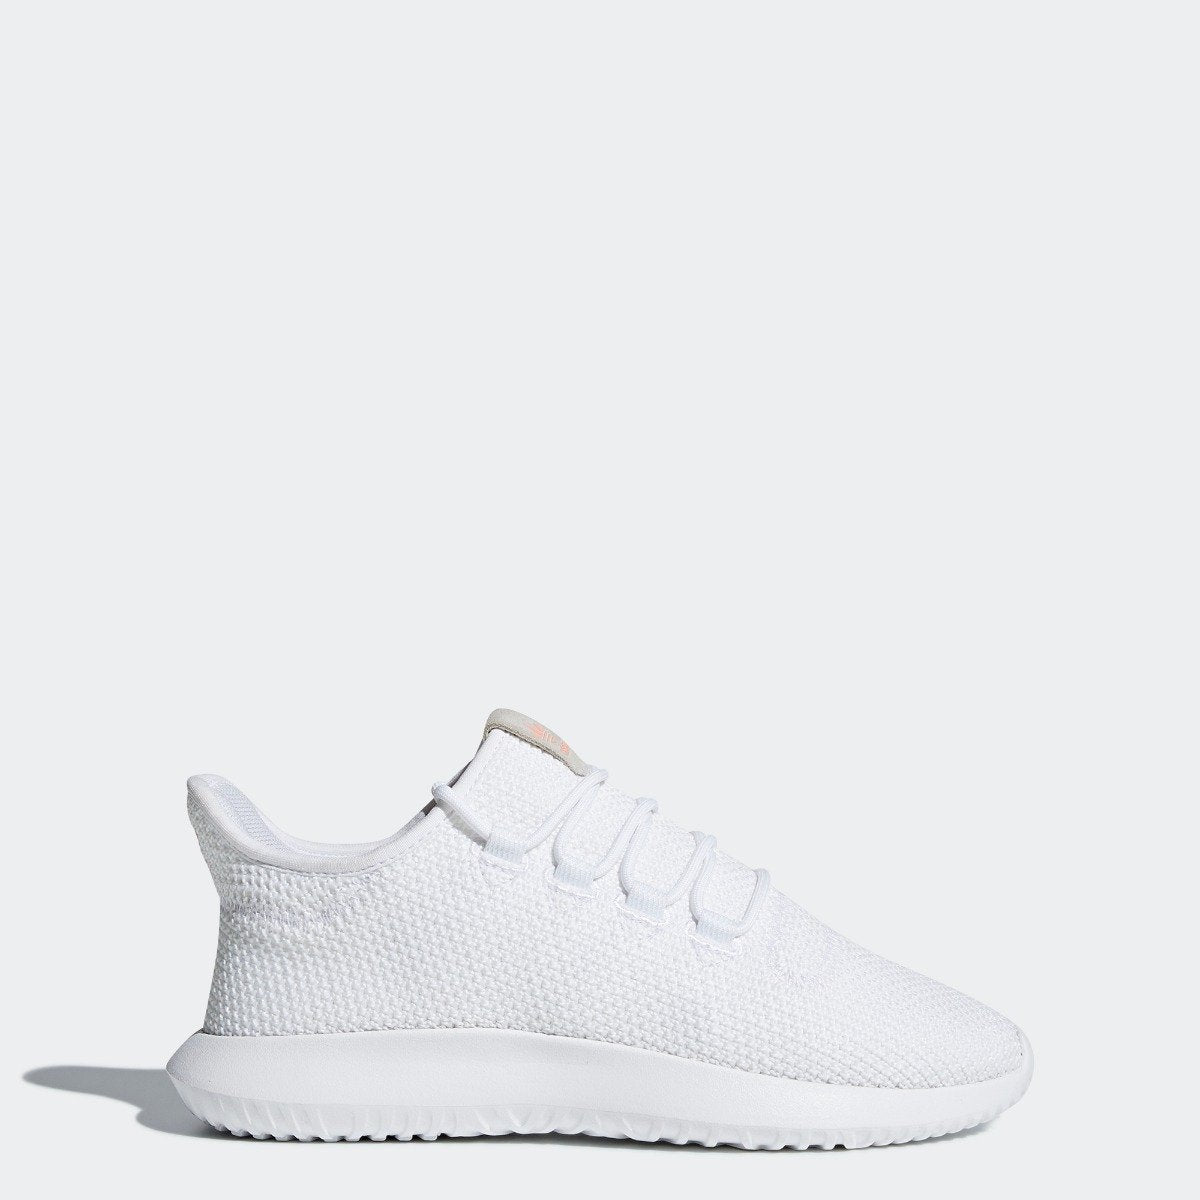 timeless design e23a8 d857b Women's adidas Tubular Shadow Shoes White with Pink AC8334 ...